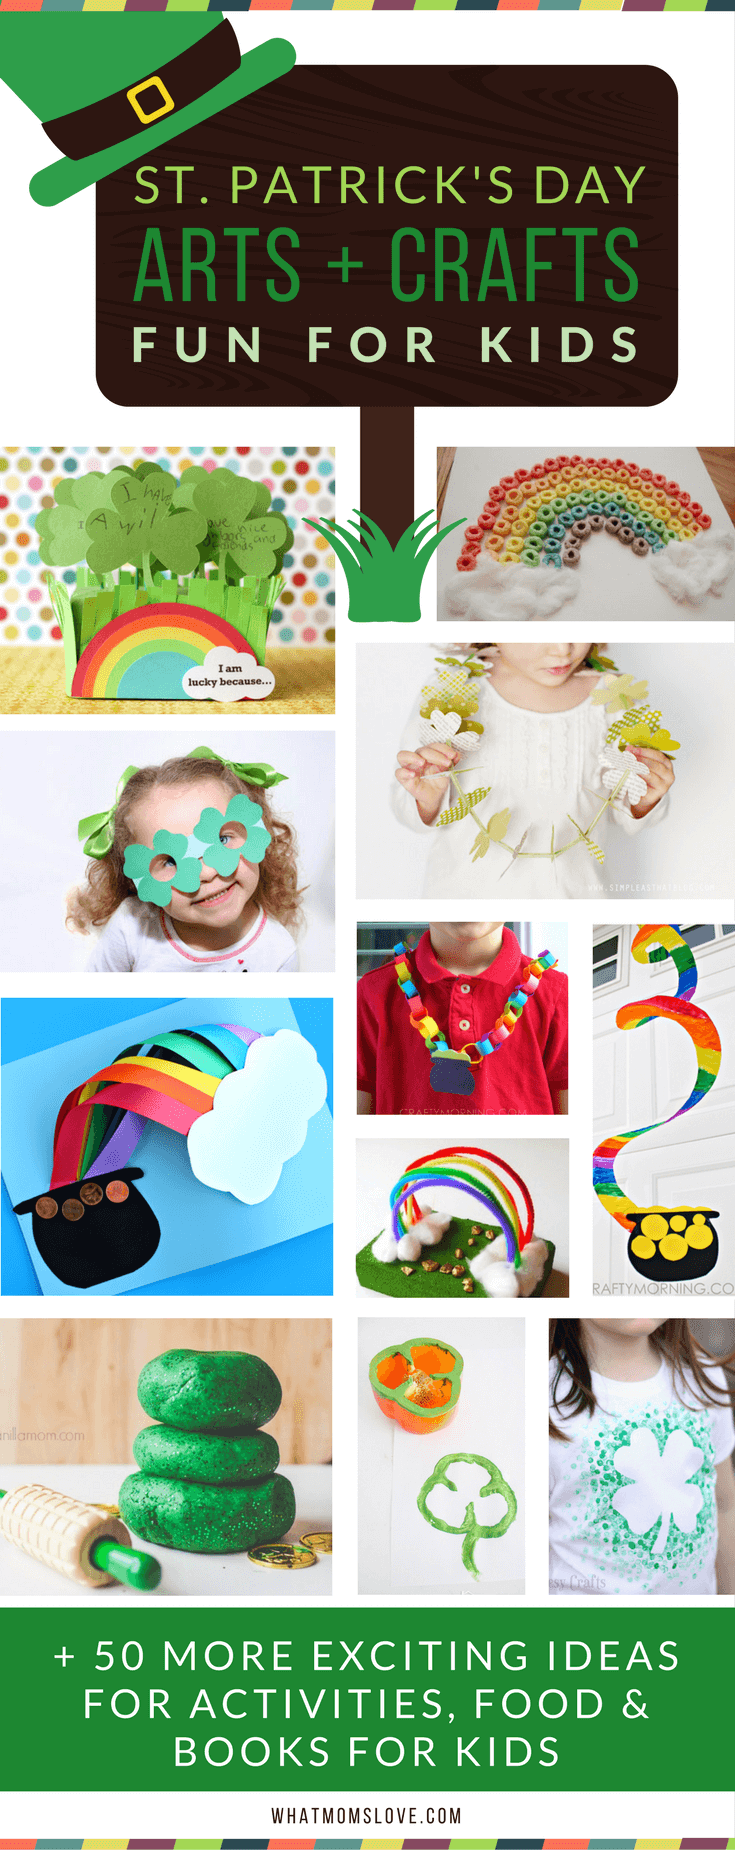 St Patricks Day Arts and Crafts Ideas for Kids | Fun DIY projects with Leprechauns, Shamrocks, and Rainbows! Plus free printables!